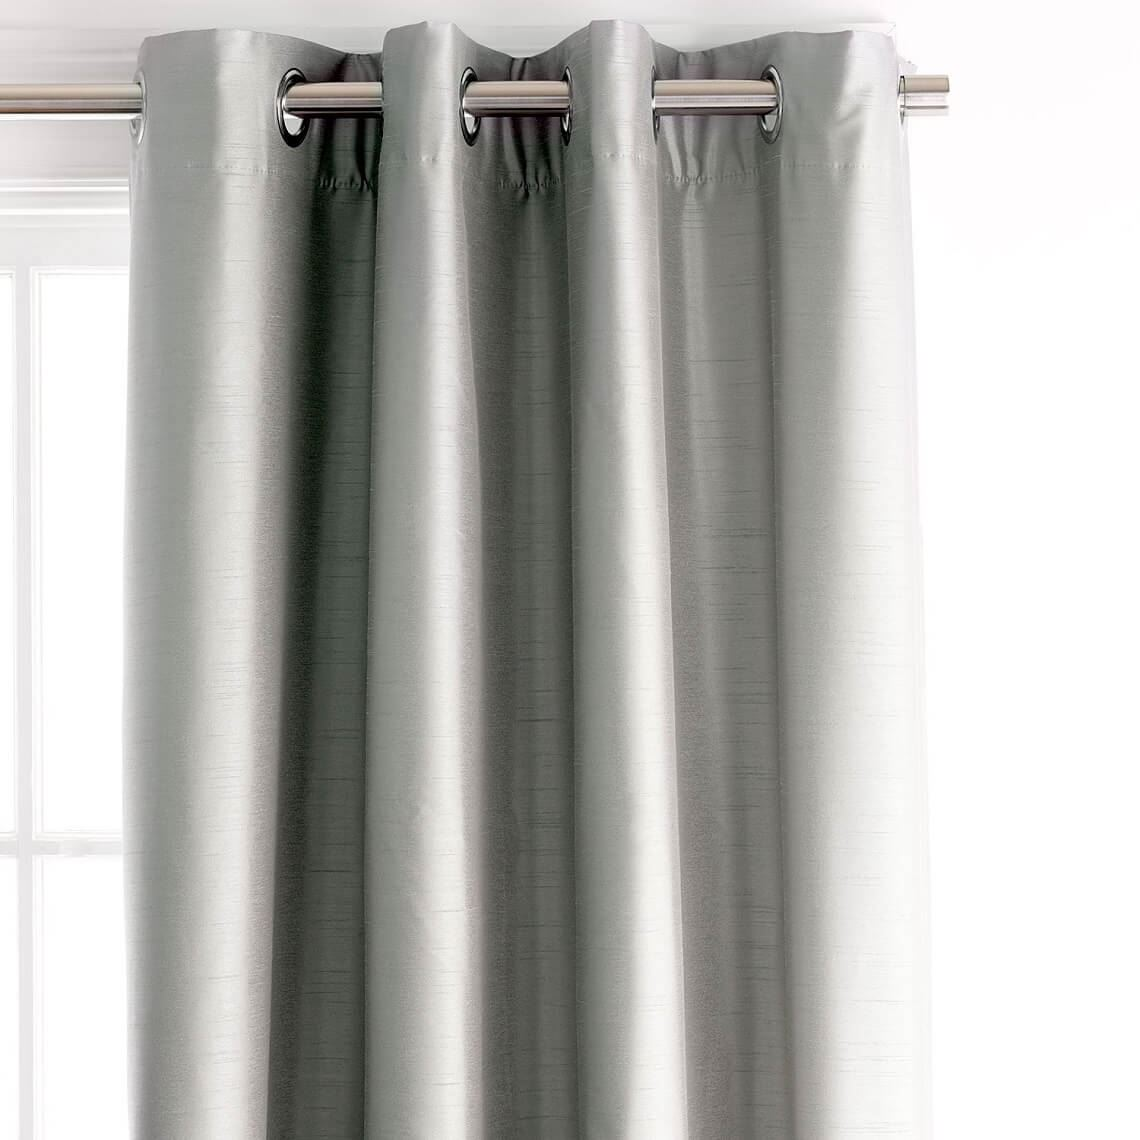 Aberdeen Blockout Eyelet Curtain Size W 180cm x D 0cm x H 250cm in Silver 100% Polyester/Acrylic Flock Coating/Stainless Steel Freedom by Freedom, a Curtains for sale on Style Sourcebook